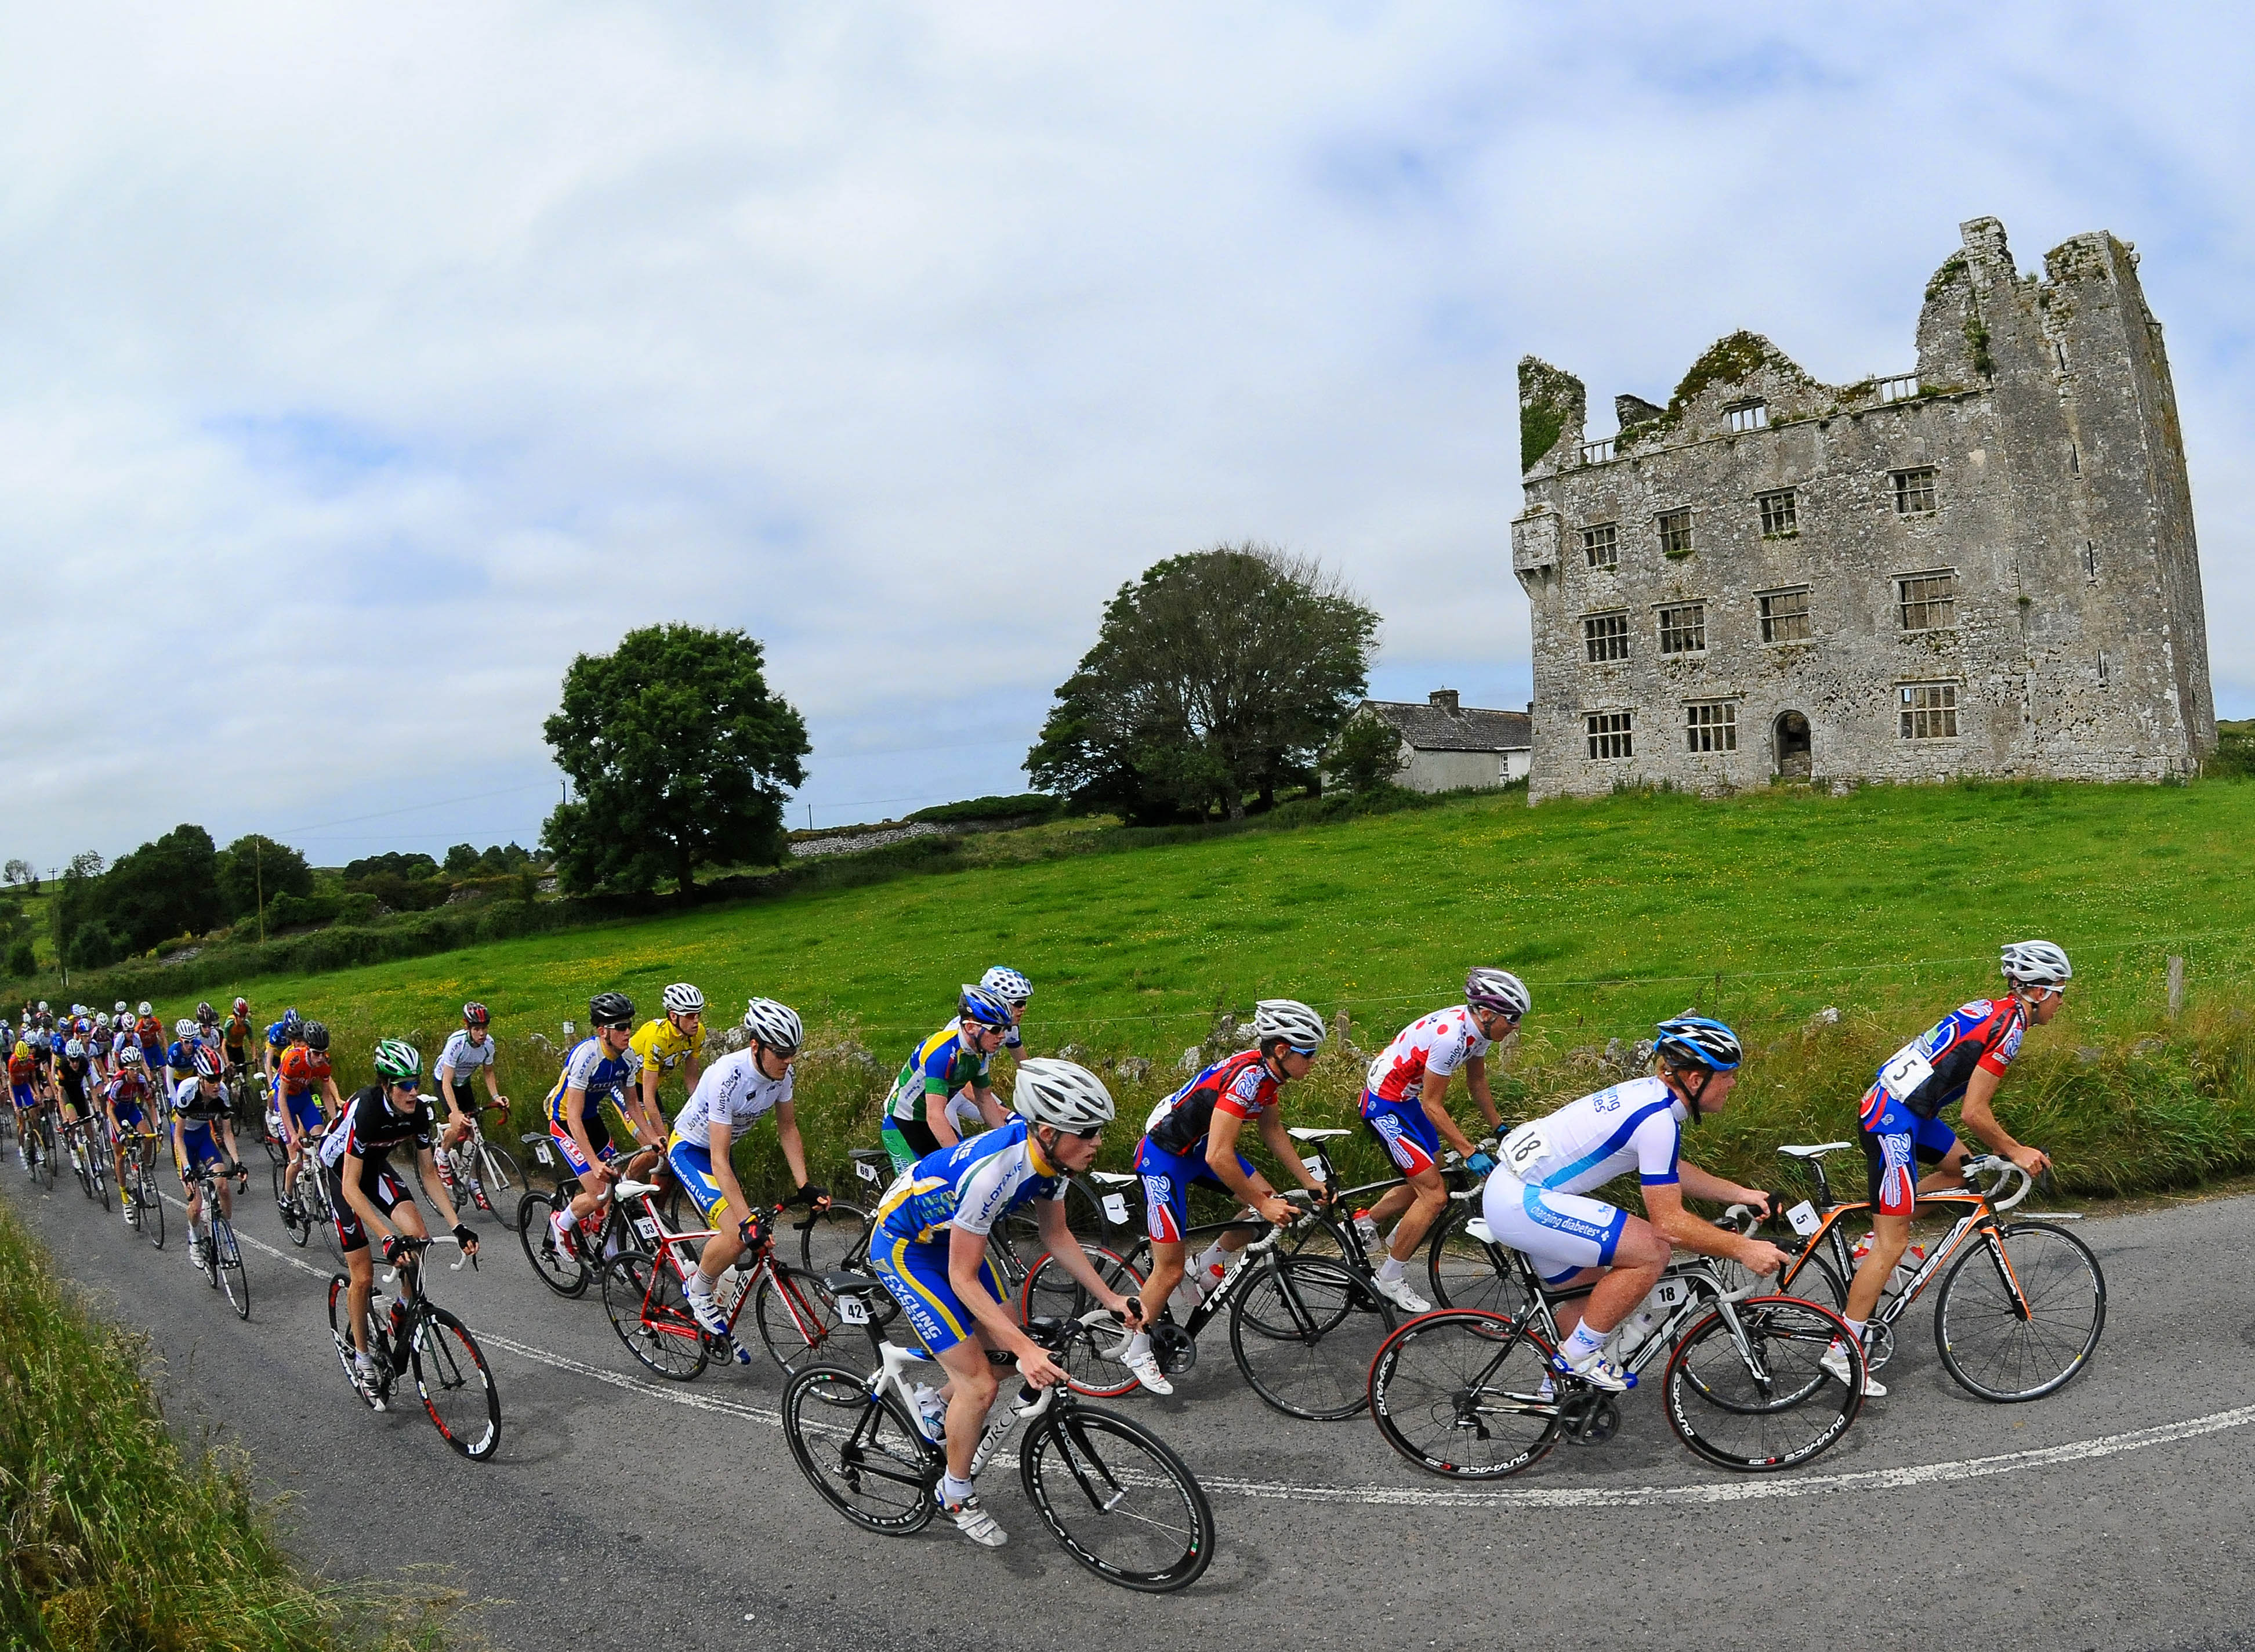 A general view of the action as the peloton pass the ruins of Leamaneh Castle during Stage 4 on the 2013 Junior Tour of Ireland, Ennis - Ennis, Co. Clare. Picture credit: Stephen McMahon / SPORTSFILE